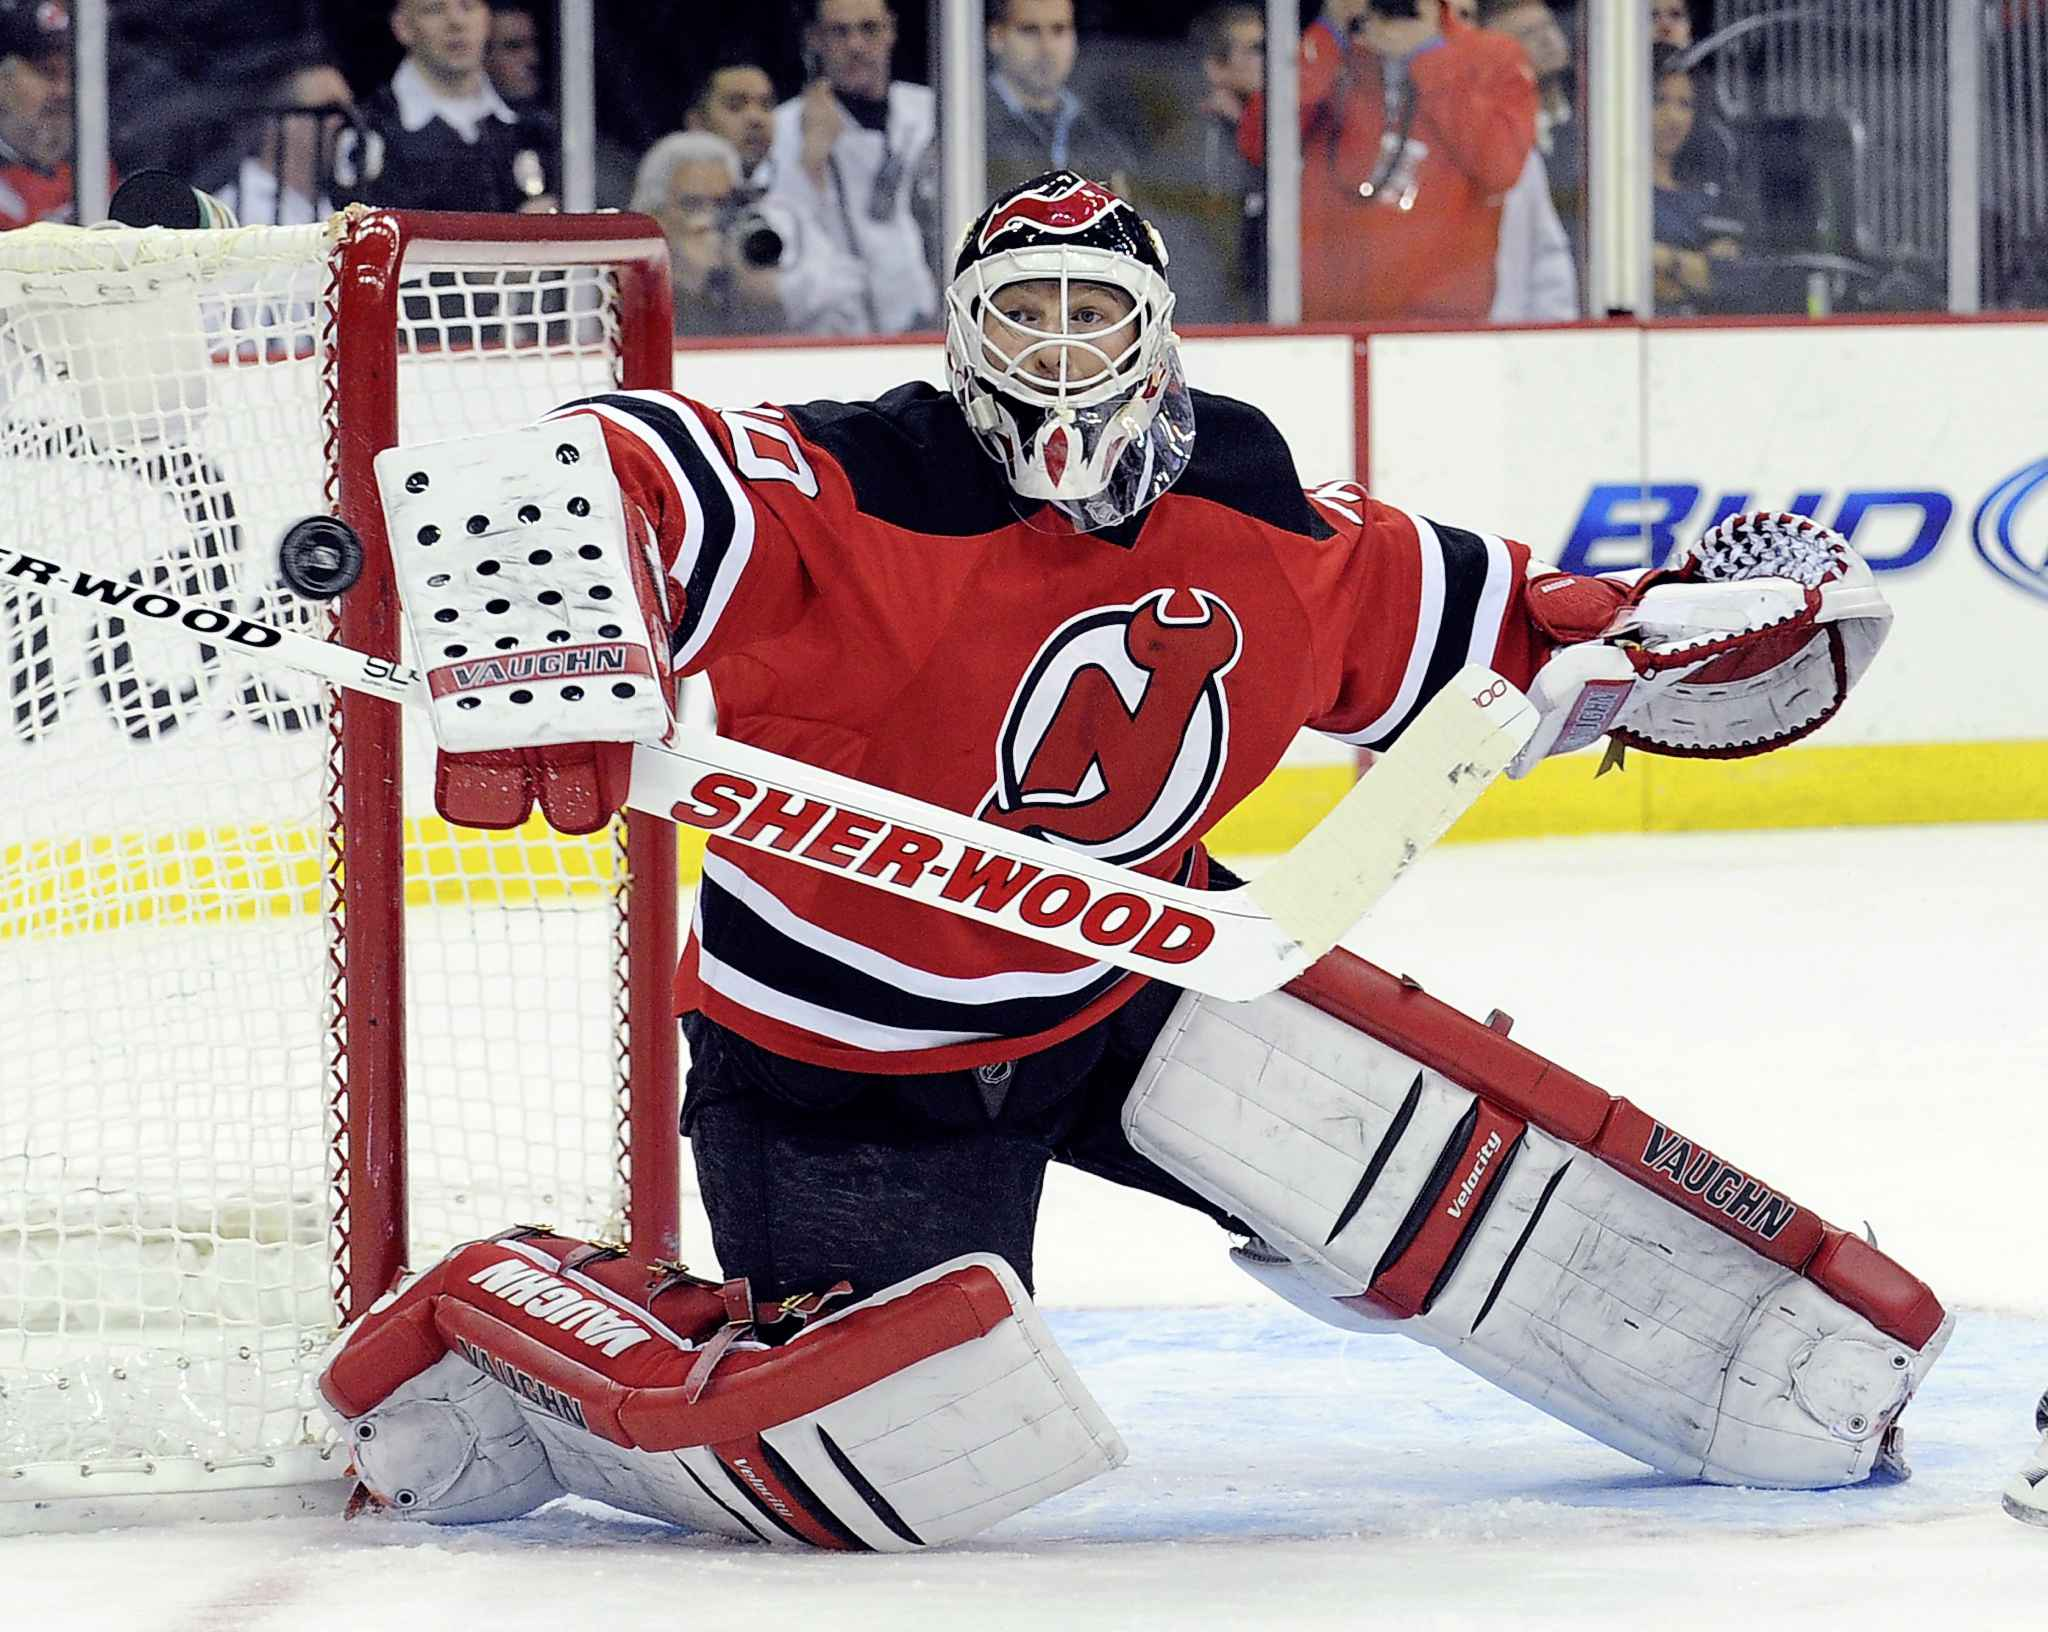 Martin Brodeur was so effective at corralling dump-ins and setting up the breakout the NHL instituted the trapezoid to limit their ability to handle the puck. (Bill Kostroun / The Associated Press files)